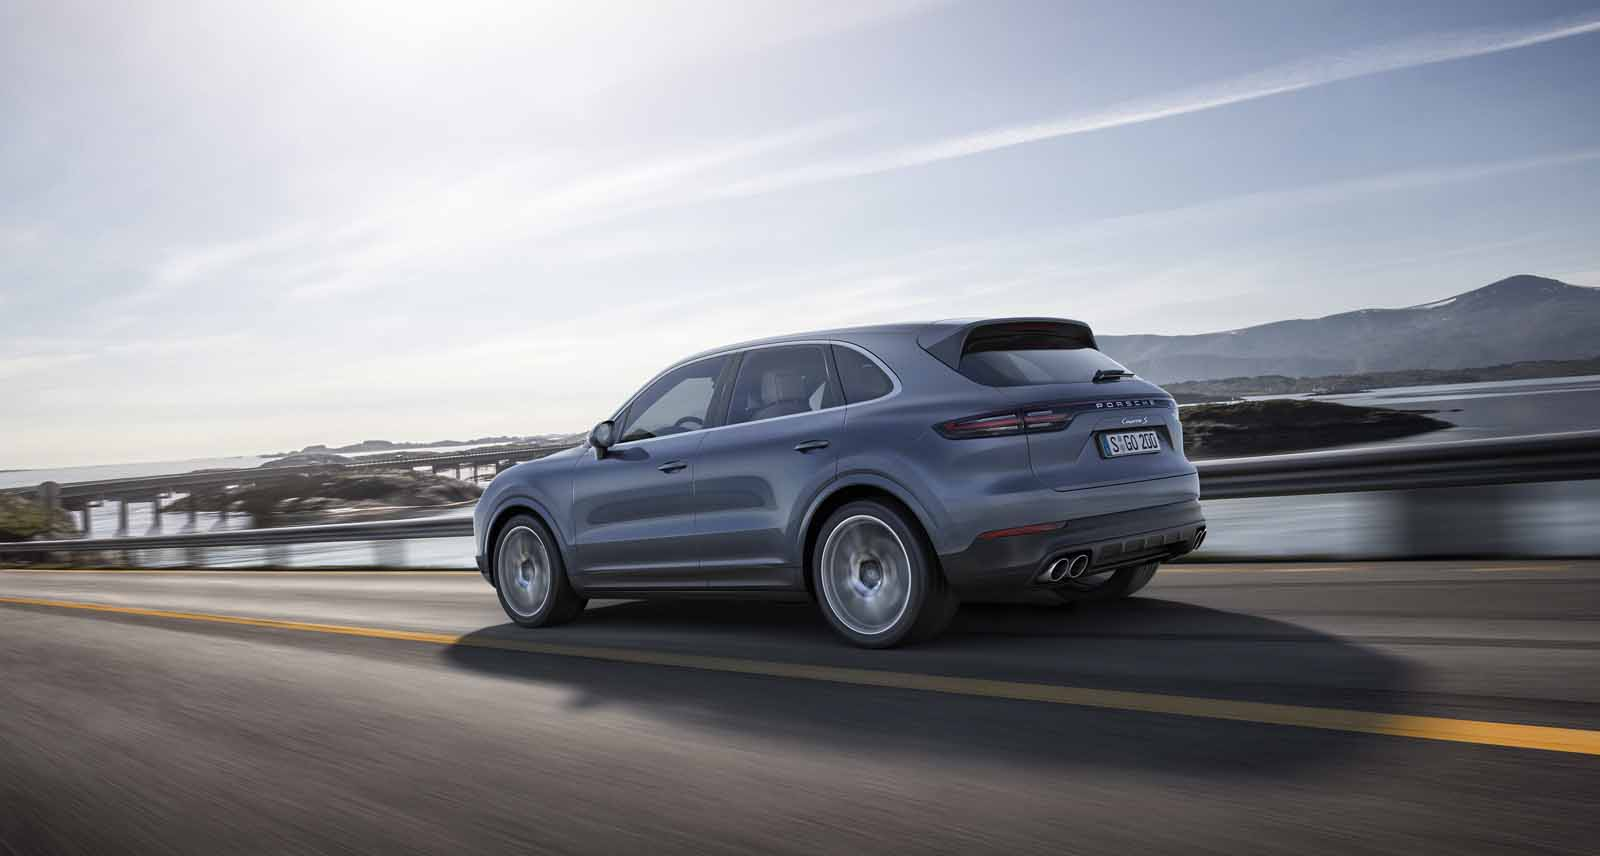 How The 2019 Porsche Cayenne Became A Legit Drift Car